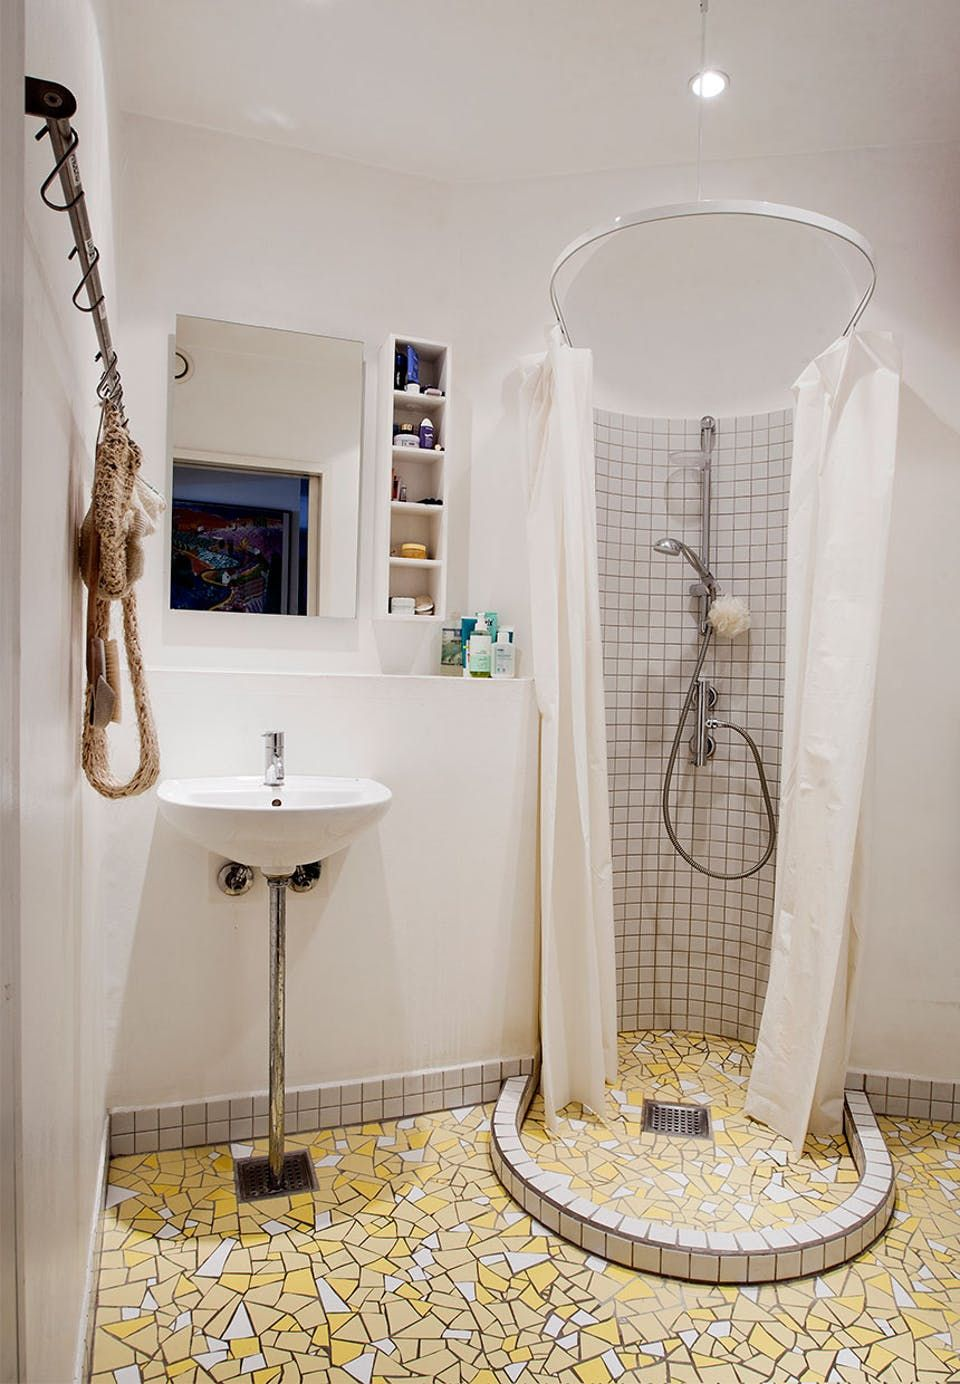 Retro-inspired bathroom with selfmade yellow mosaic floor and a shower cabin built in the old fire stove's place.